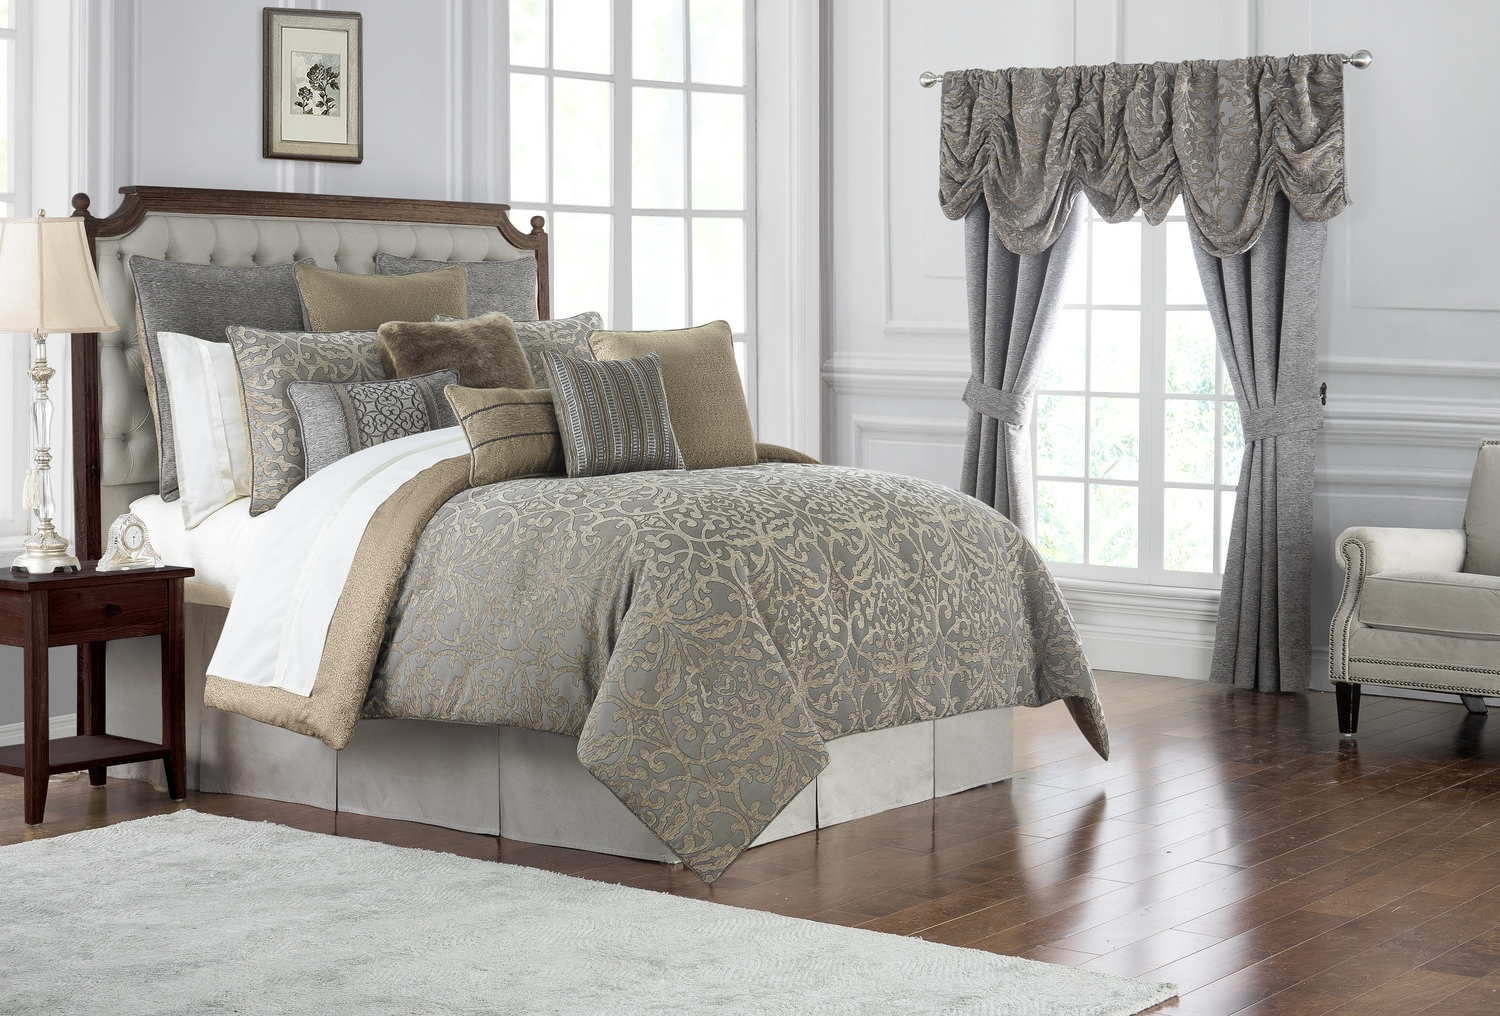 Carrick By Waterford Luxury Bedding Beddingsuperstore Com